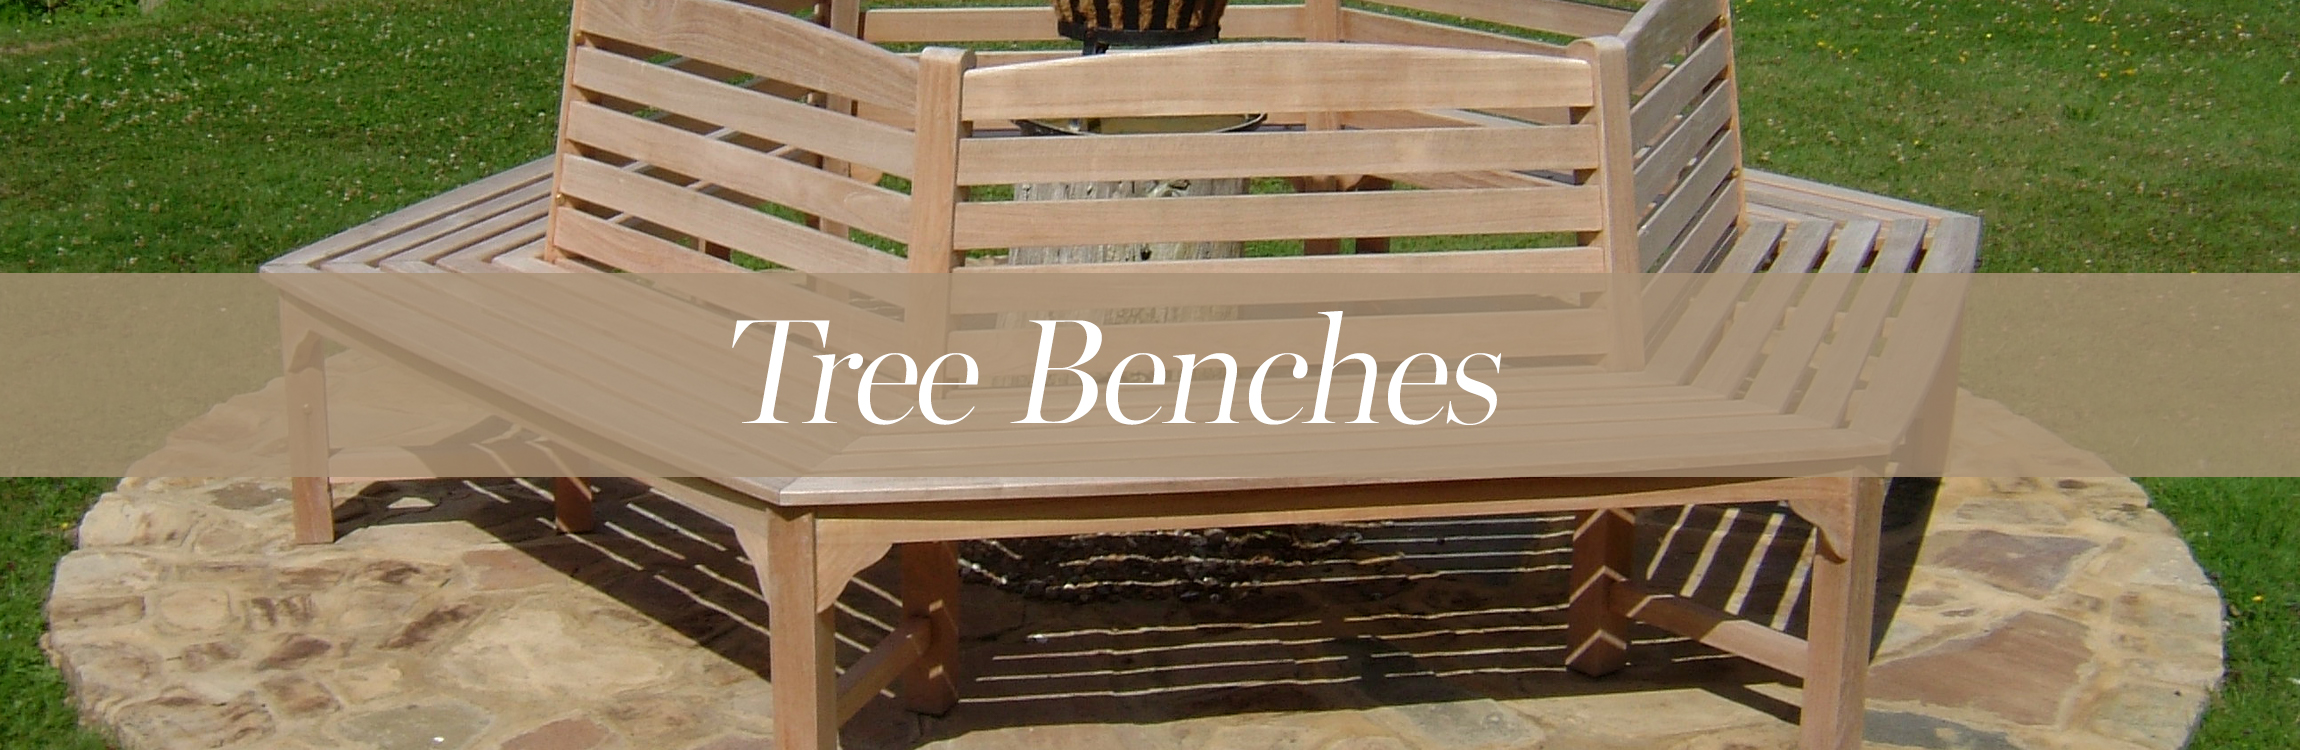 Tree Benches